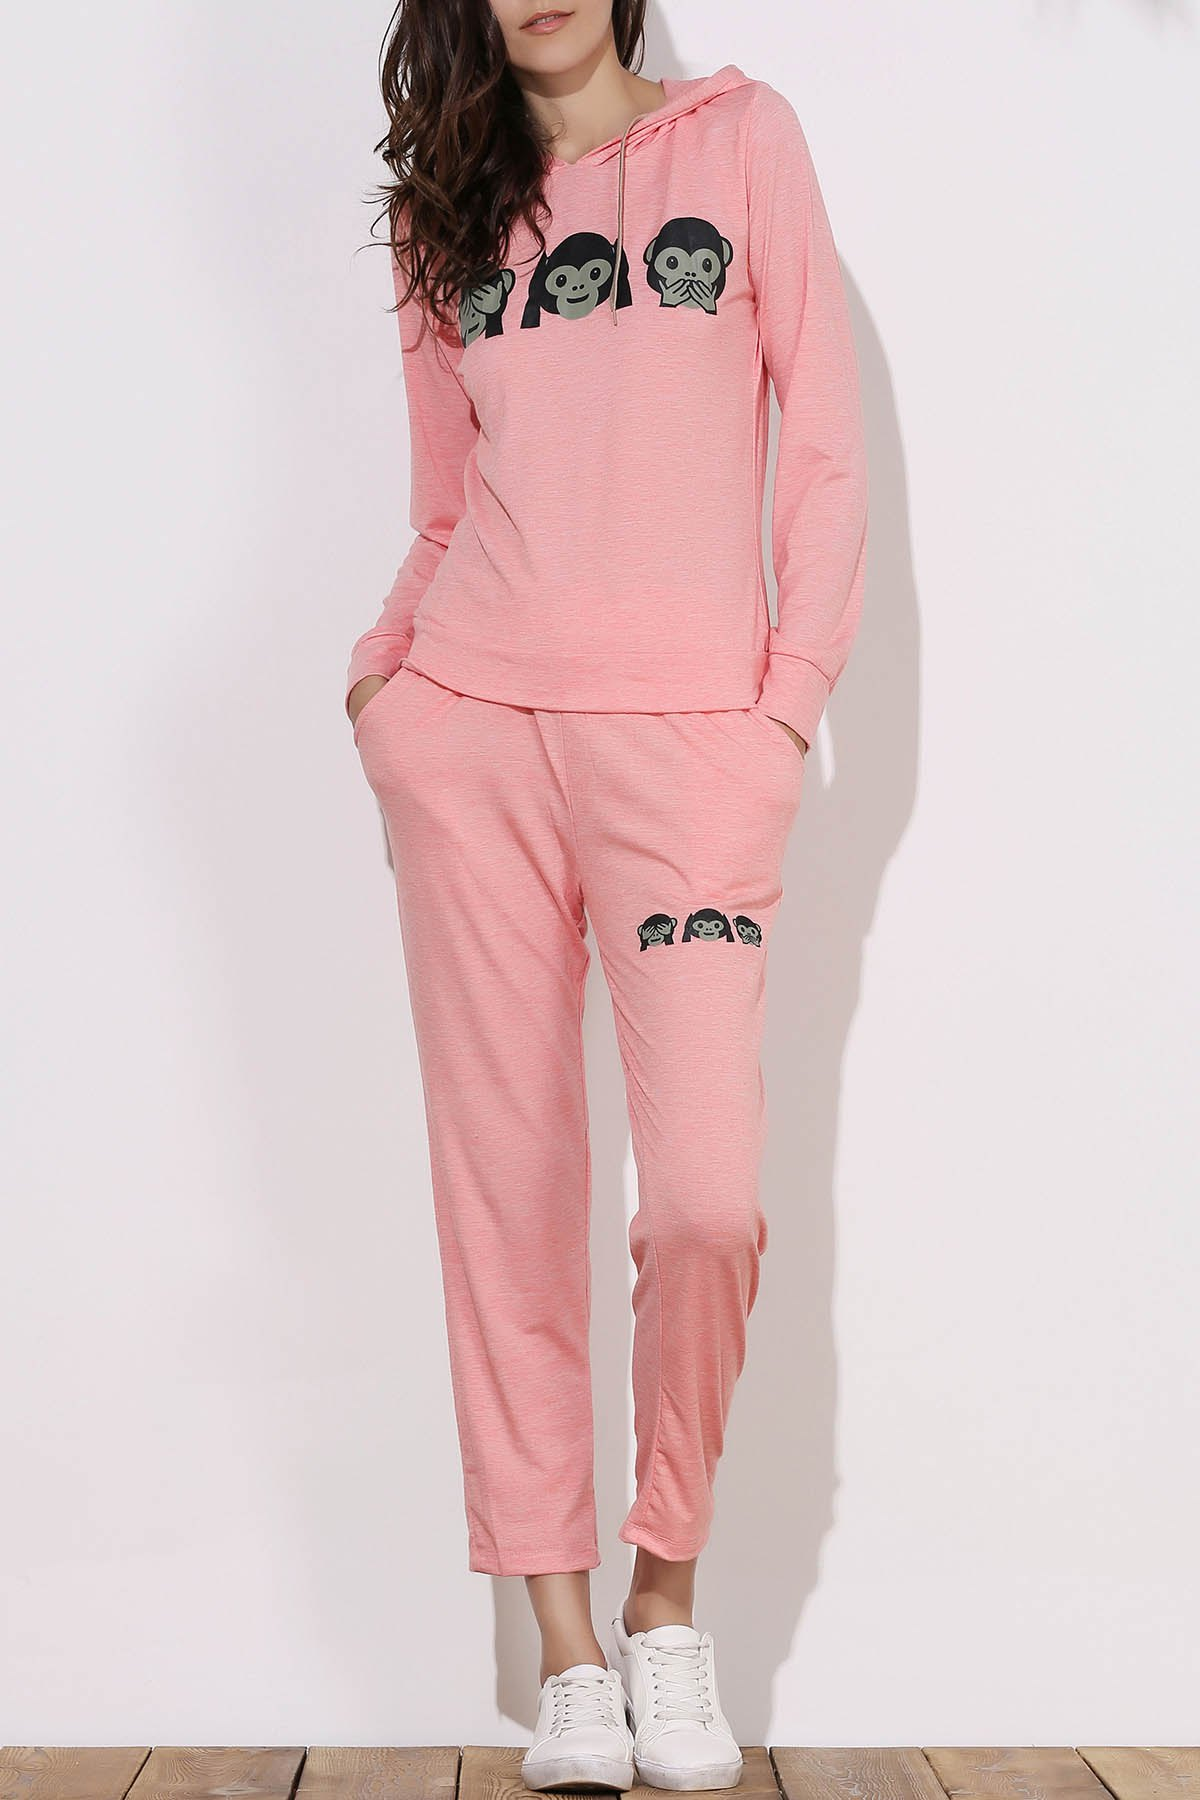 Image of Active Emoji Printed Hooded Pullover Hoodie and Elastic Waist Pants Twinset For Women